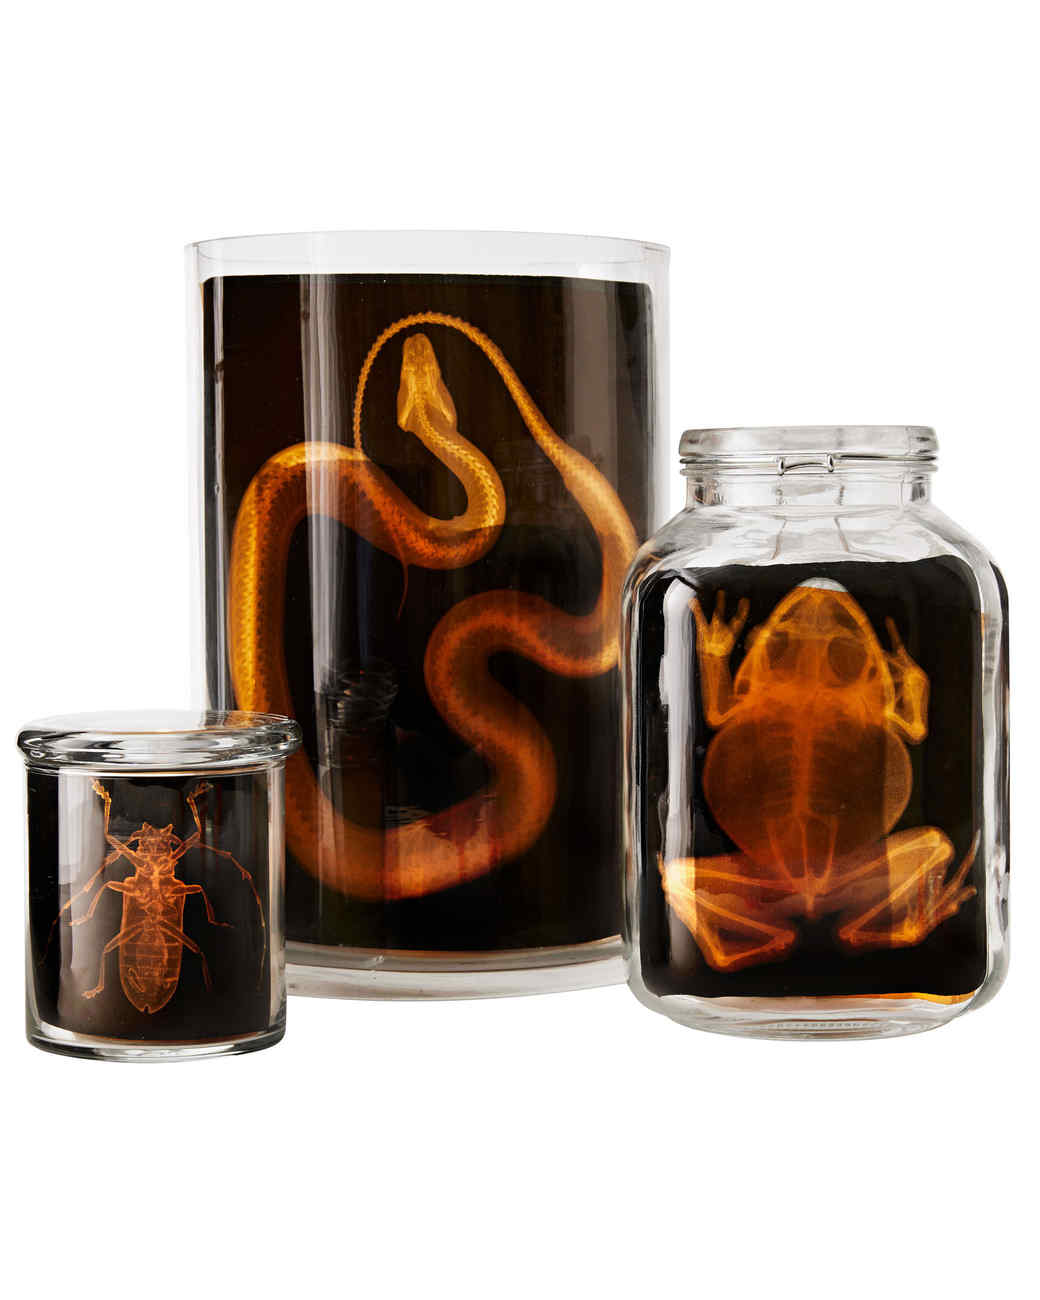 glass jars with images of animal x-rays